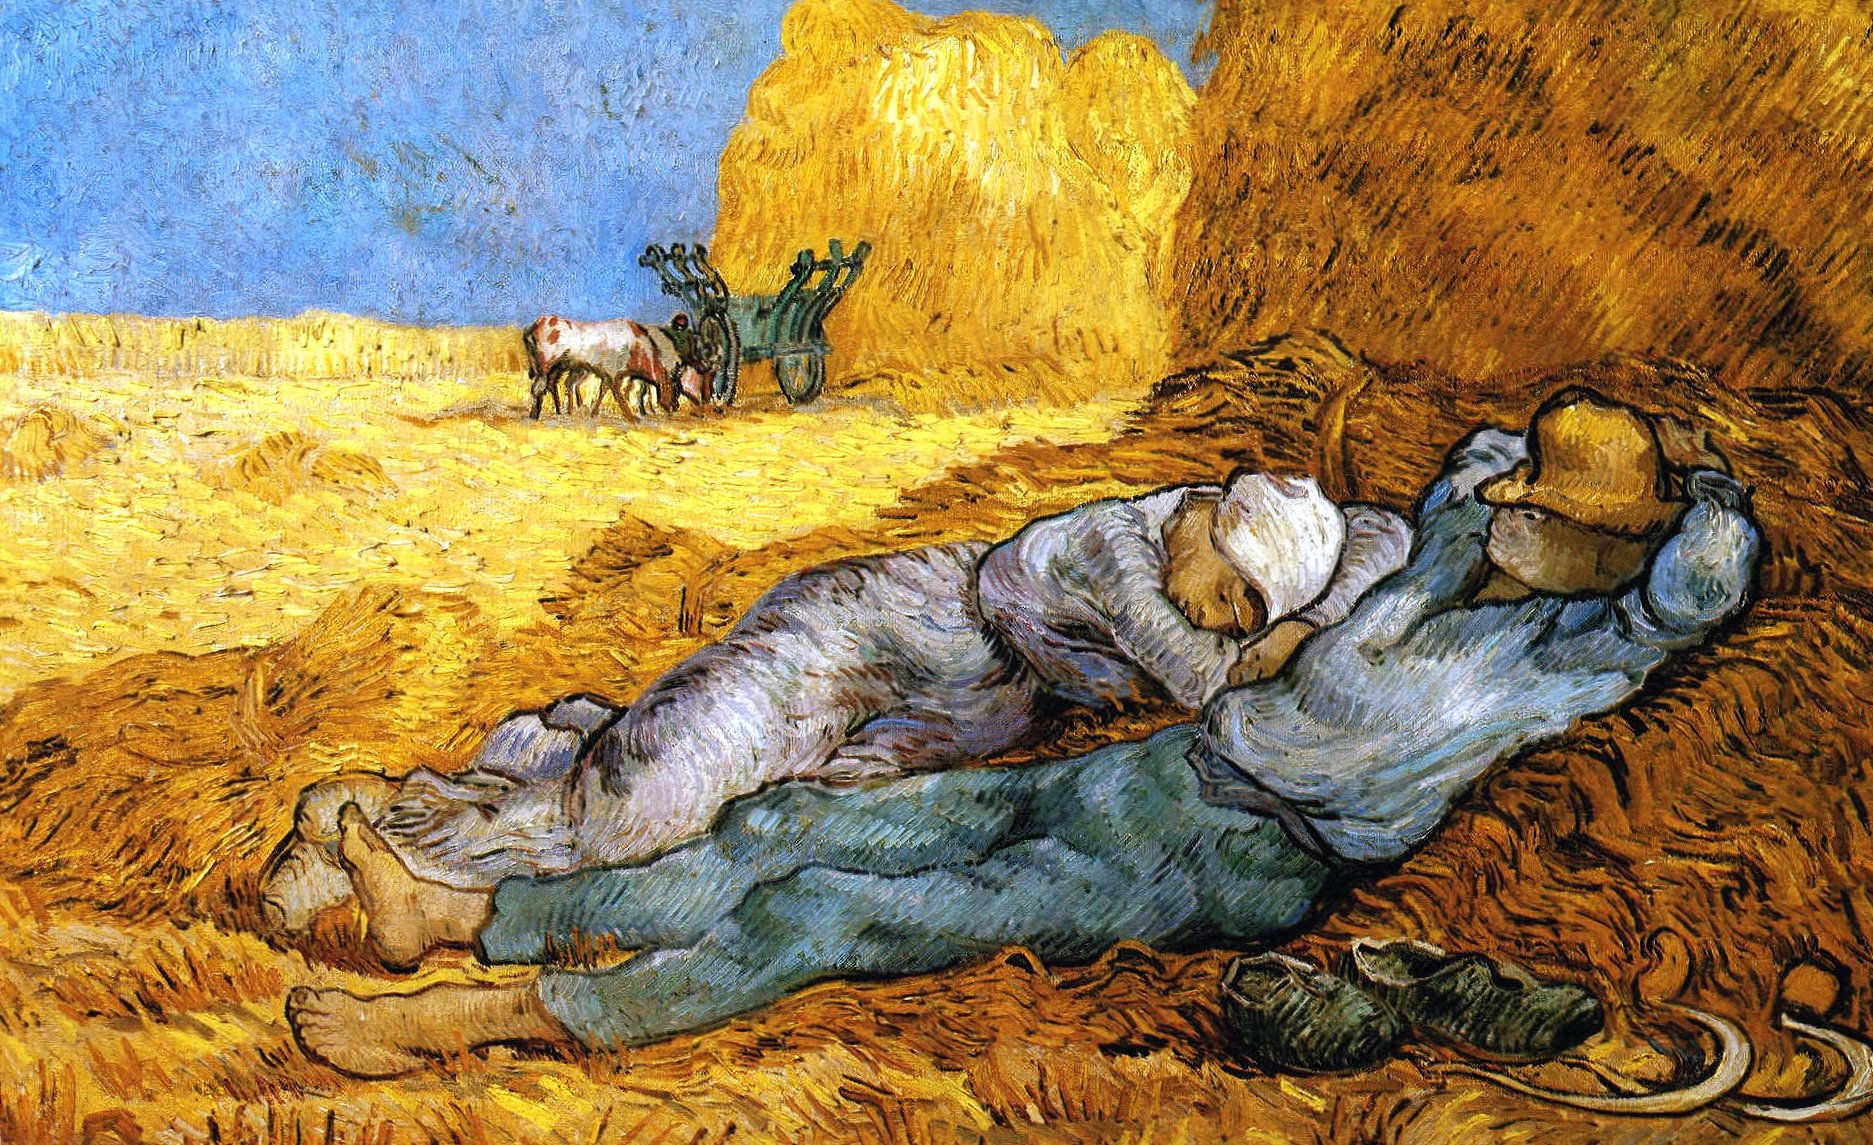 Vincent van gogh rest of the laborers wallpapers HD quality